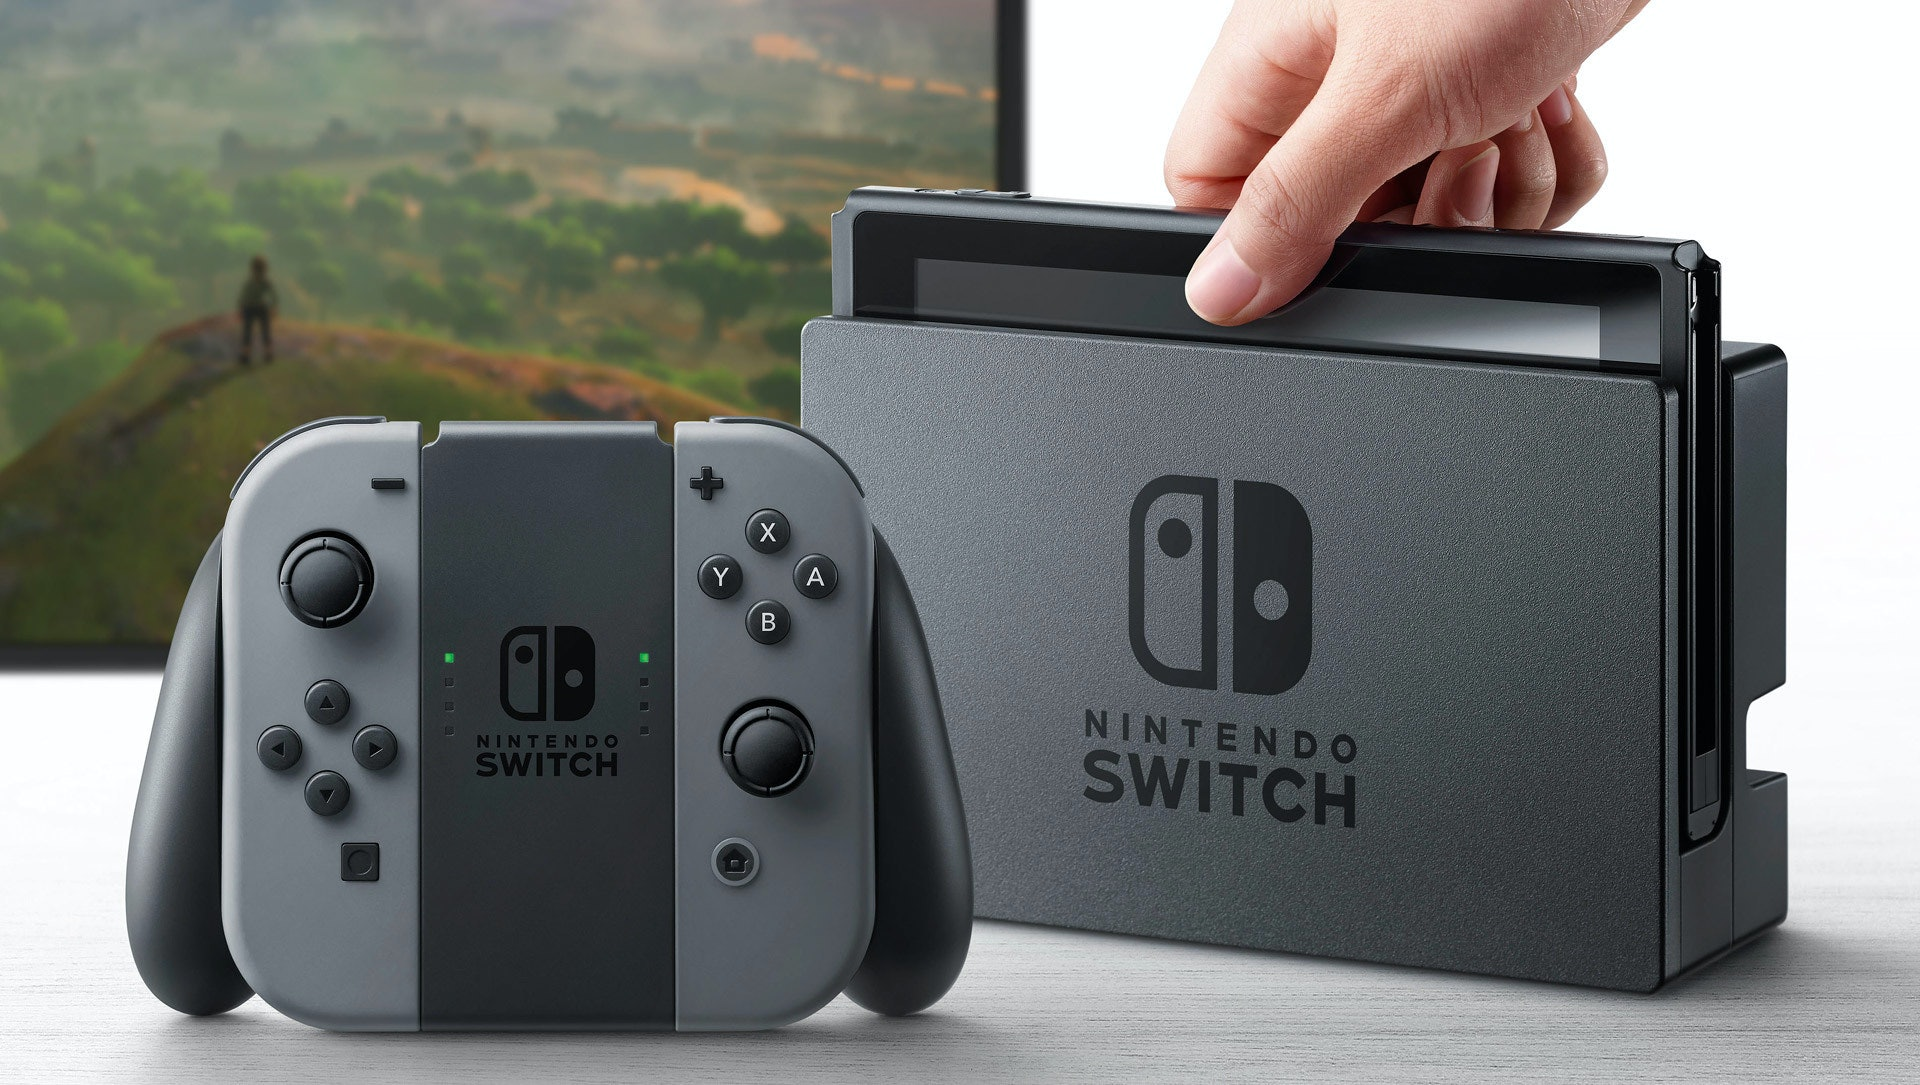 Nintendo Switch home hybrid console by Nintendo